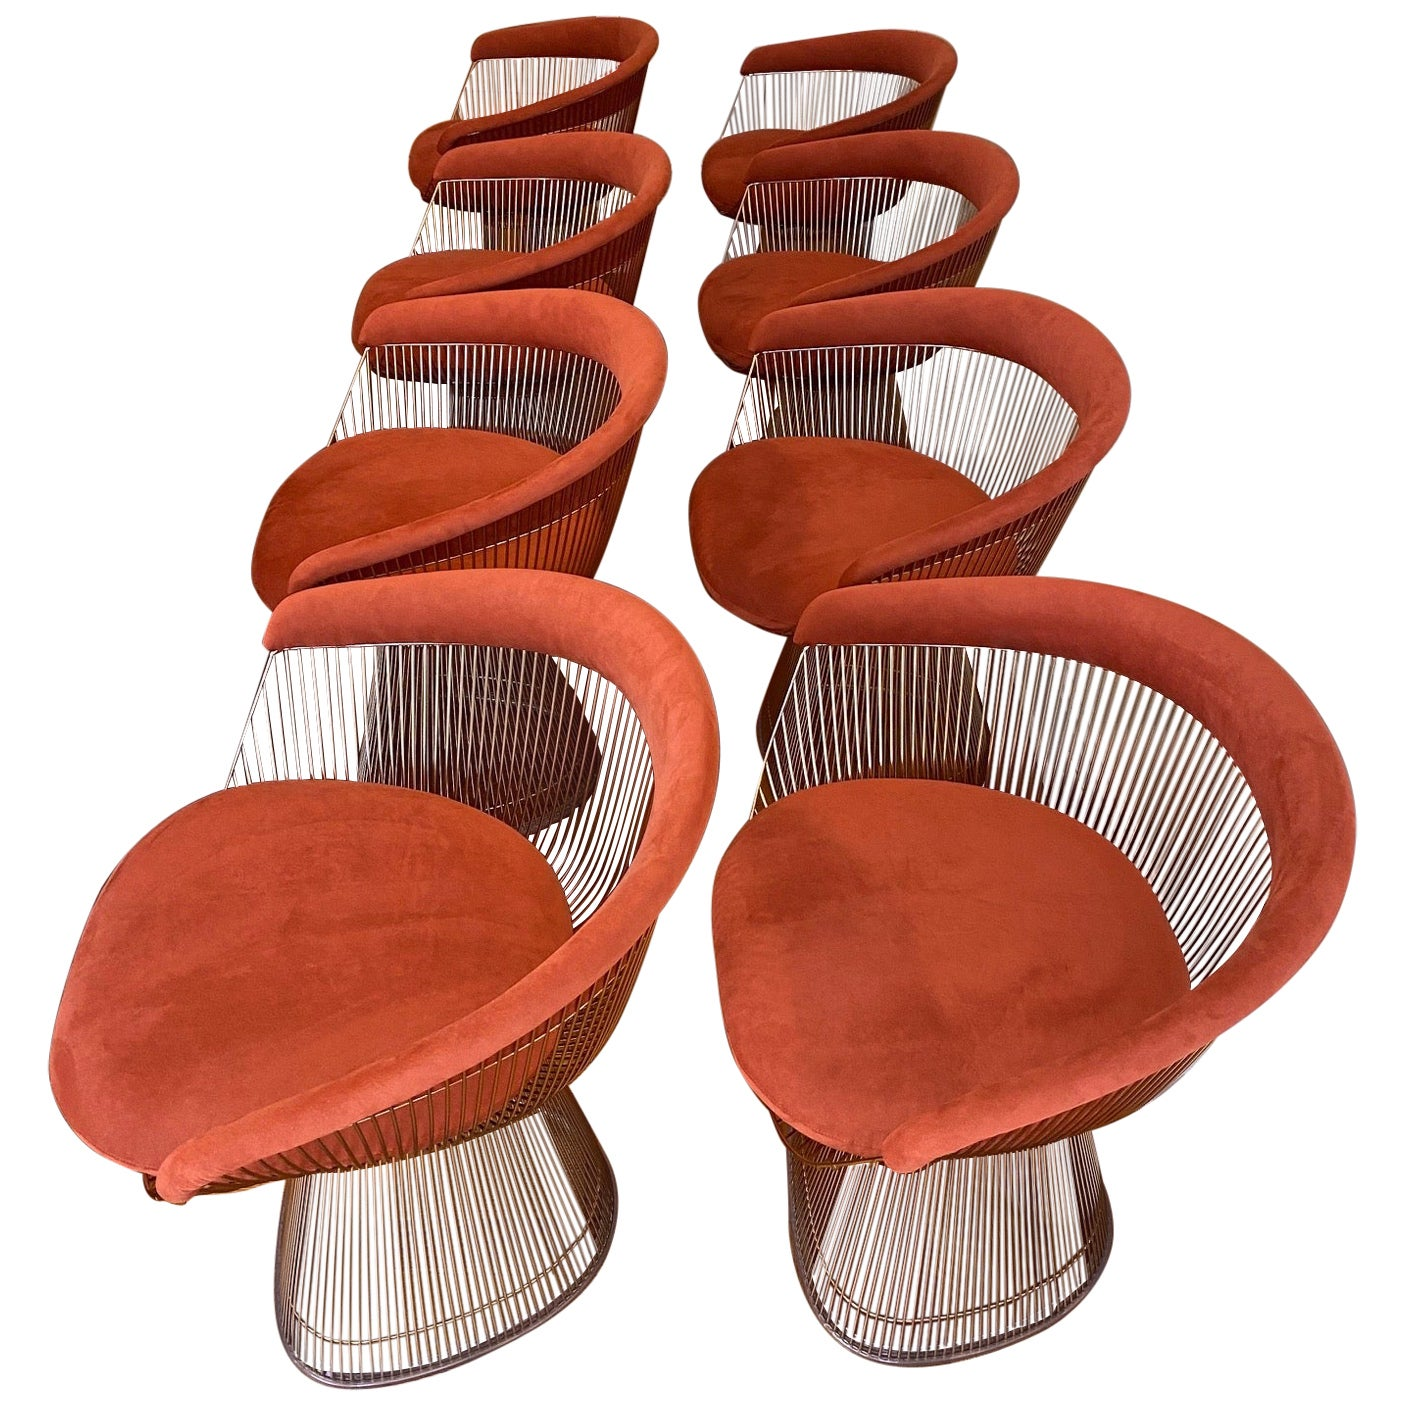 Set of Eight Warren Platner for Knoll Wire Armchairs, Late 20th C